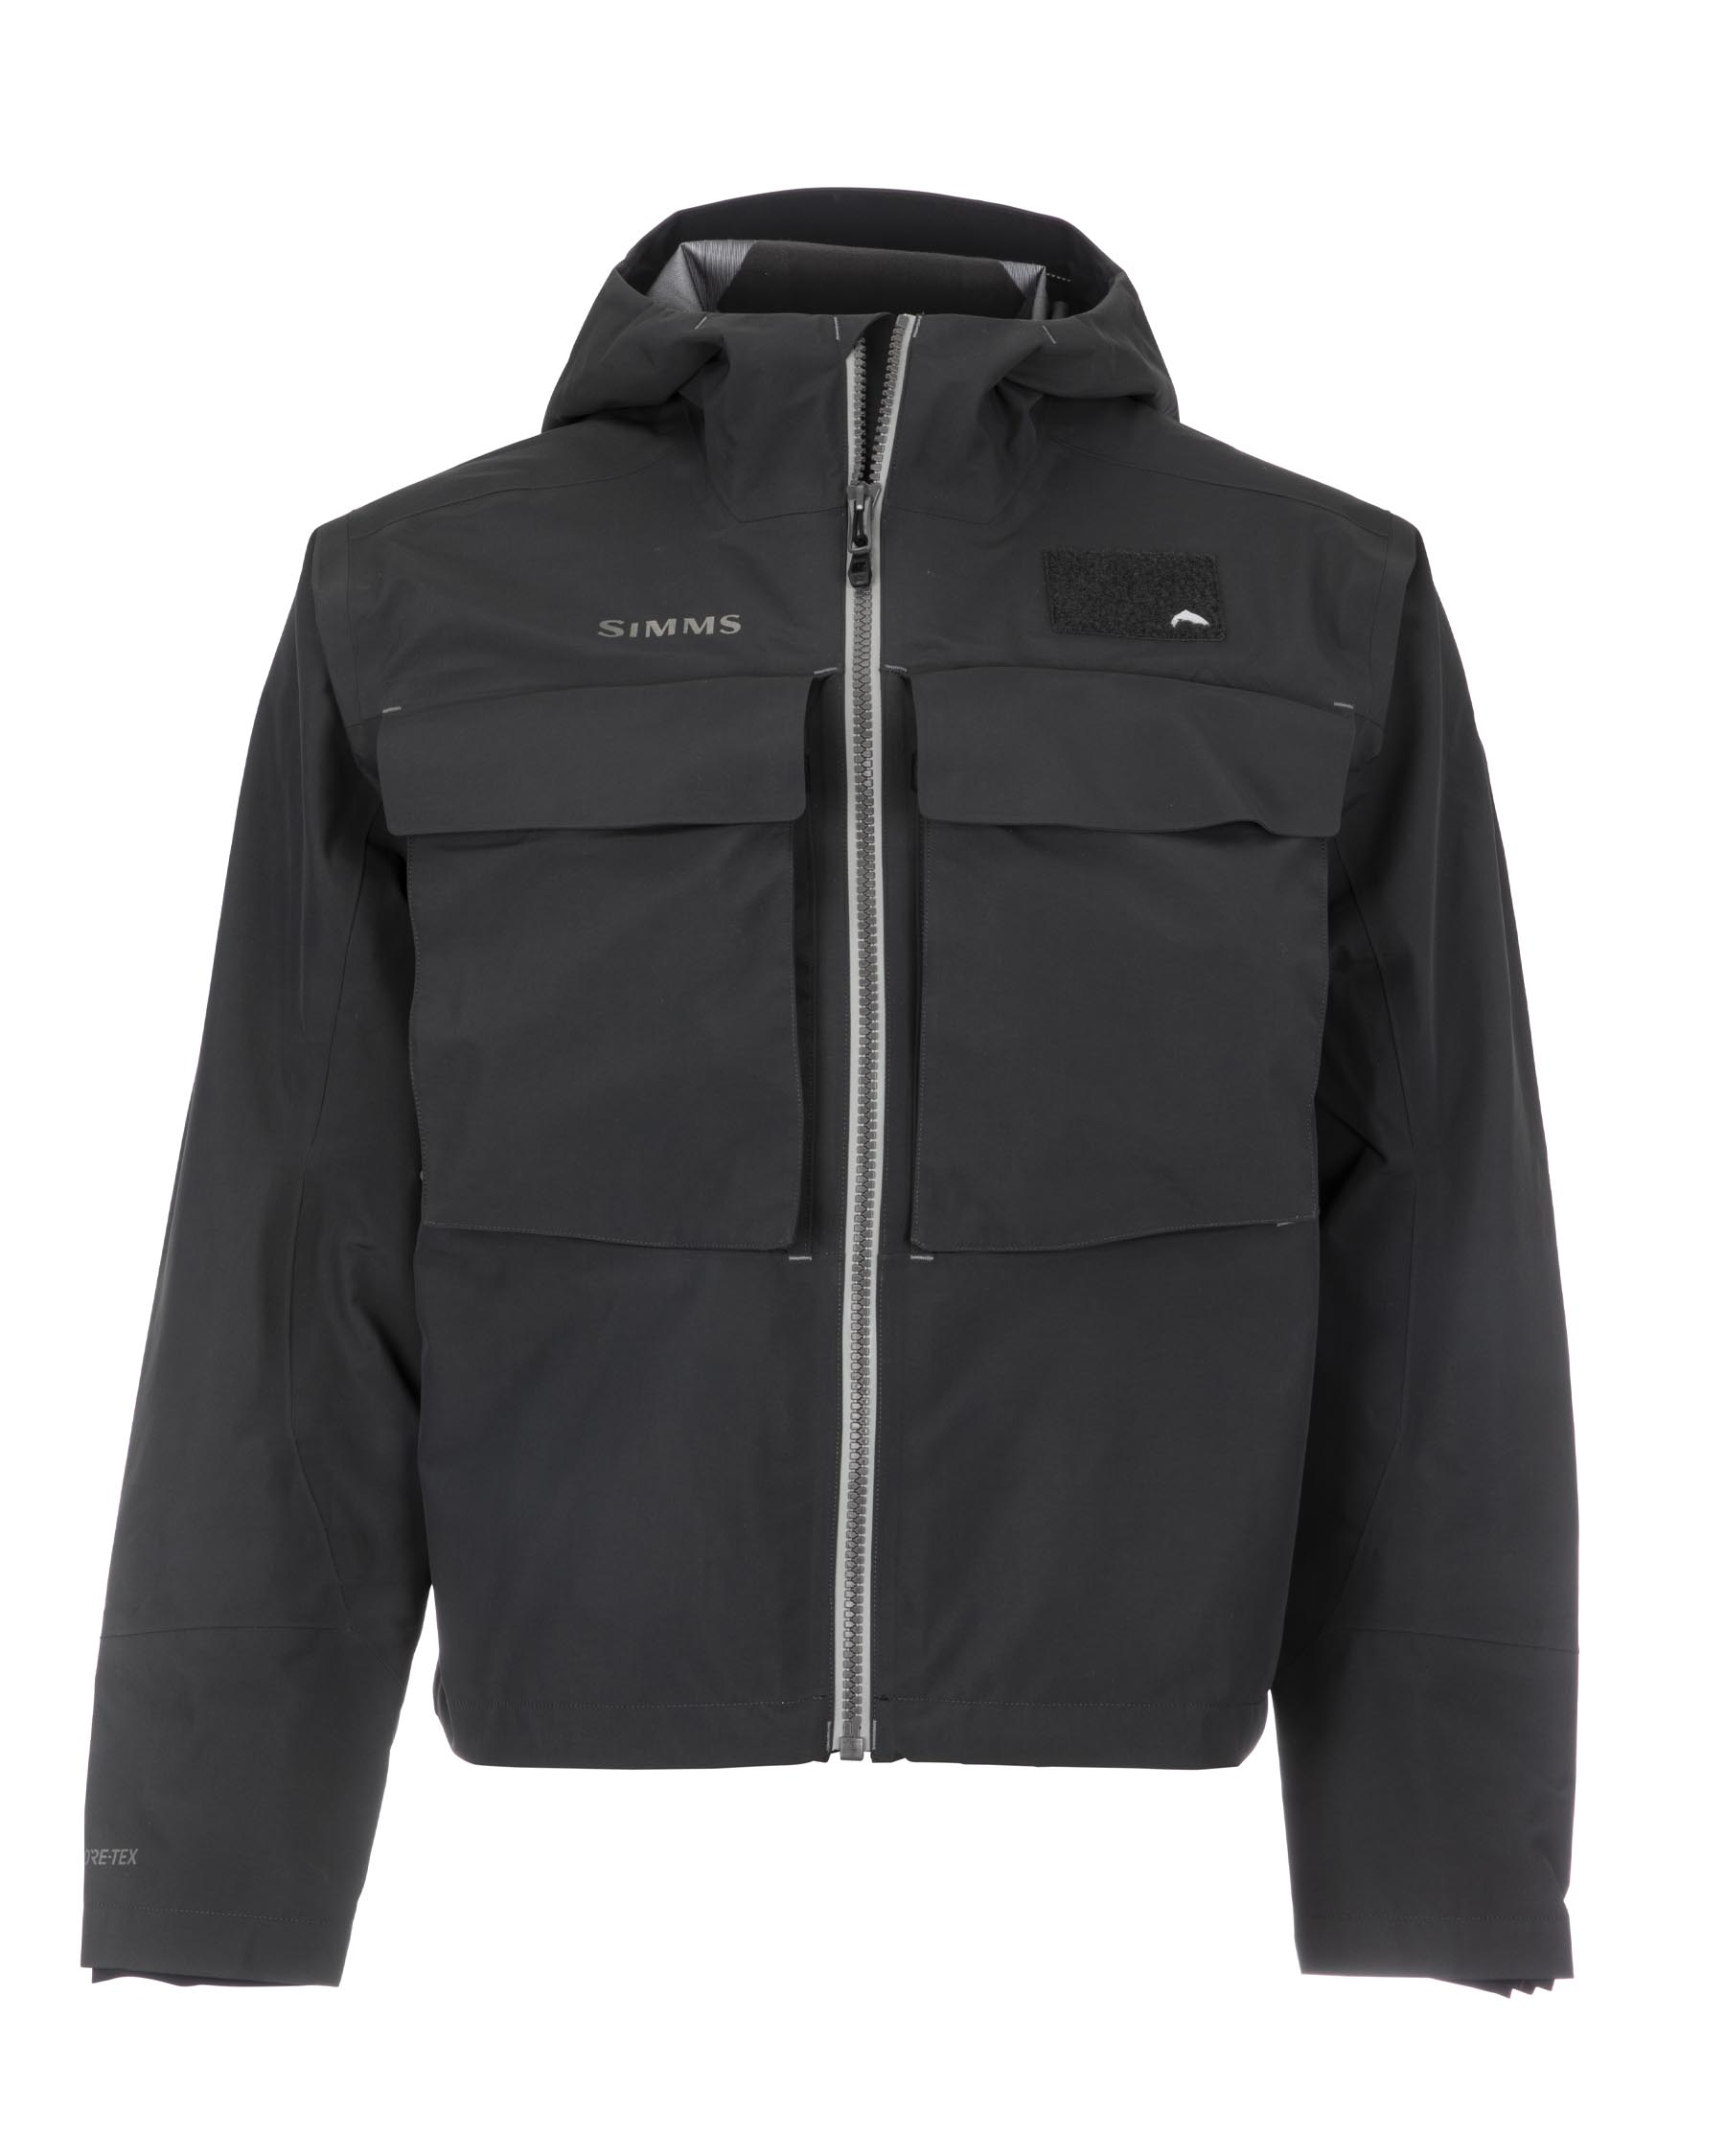 Simms Men's Guide Classic Wading Jacket - Carbon